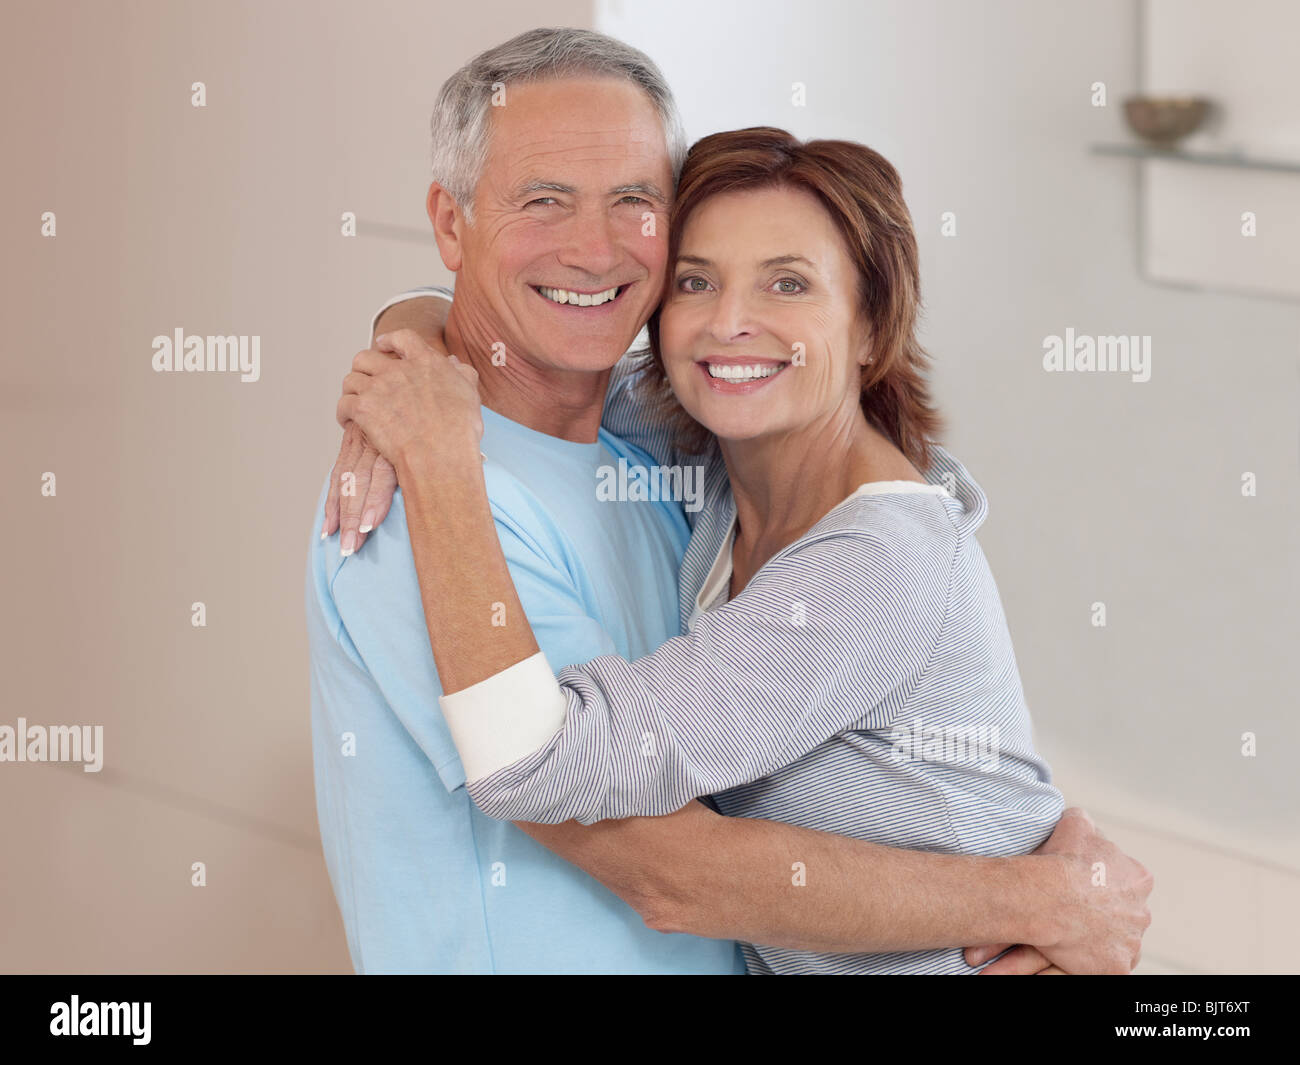 Most Rated Seniors Dating Online Websites In Canada